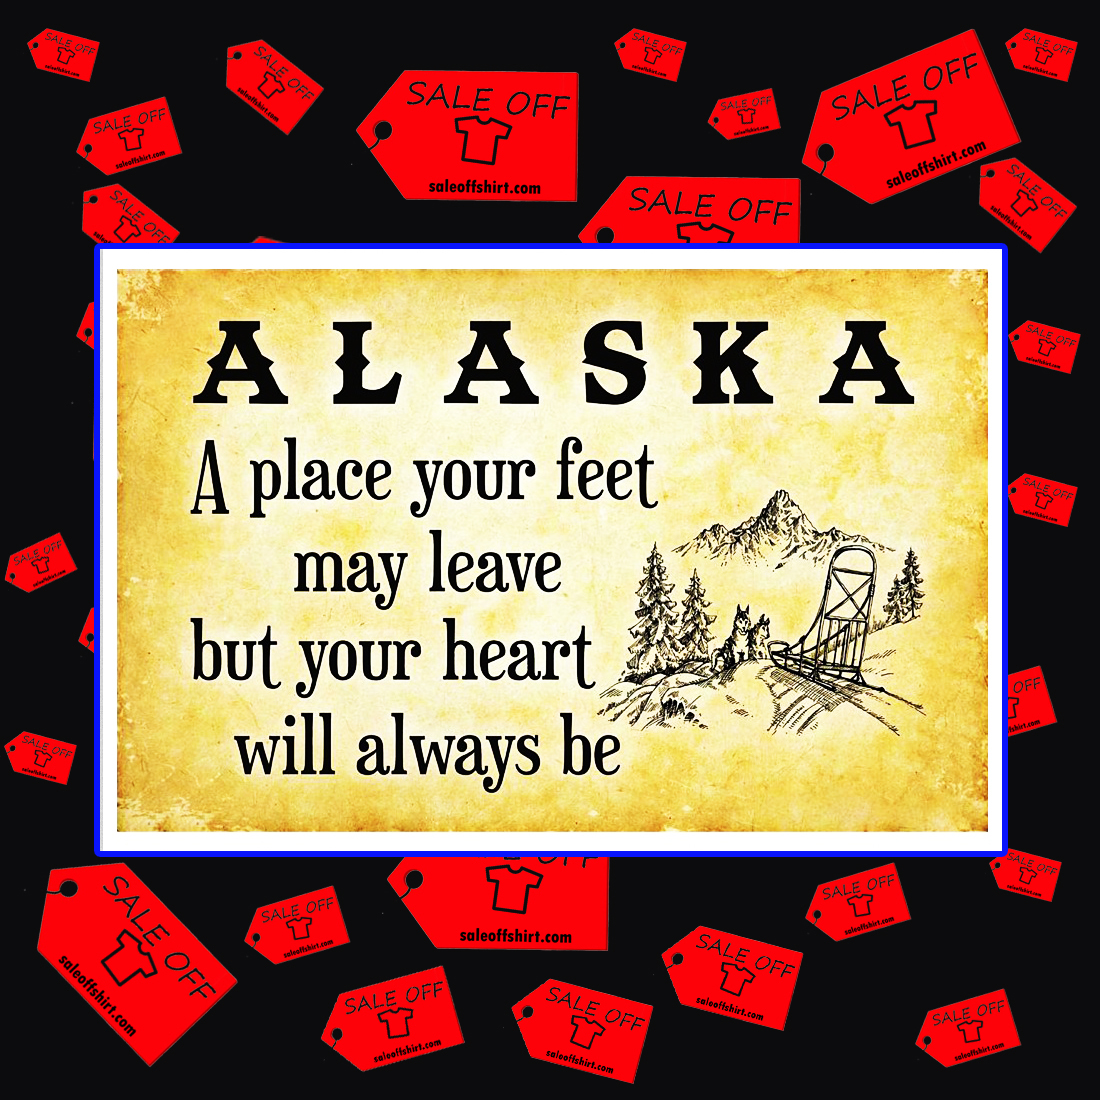 Alaska a place your feet may leave but your heart will always be poster 17x11